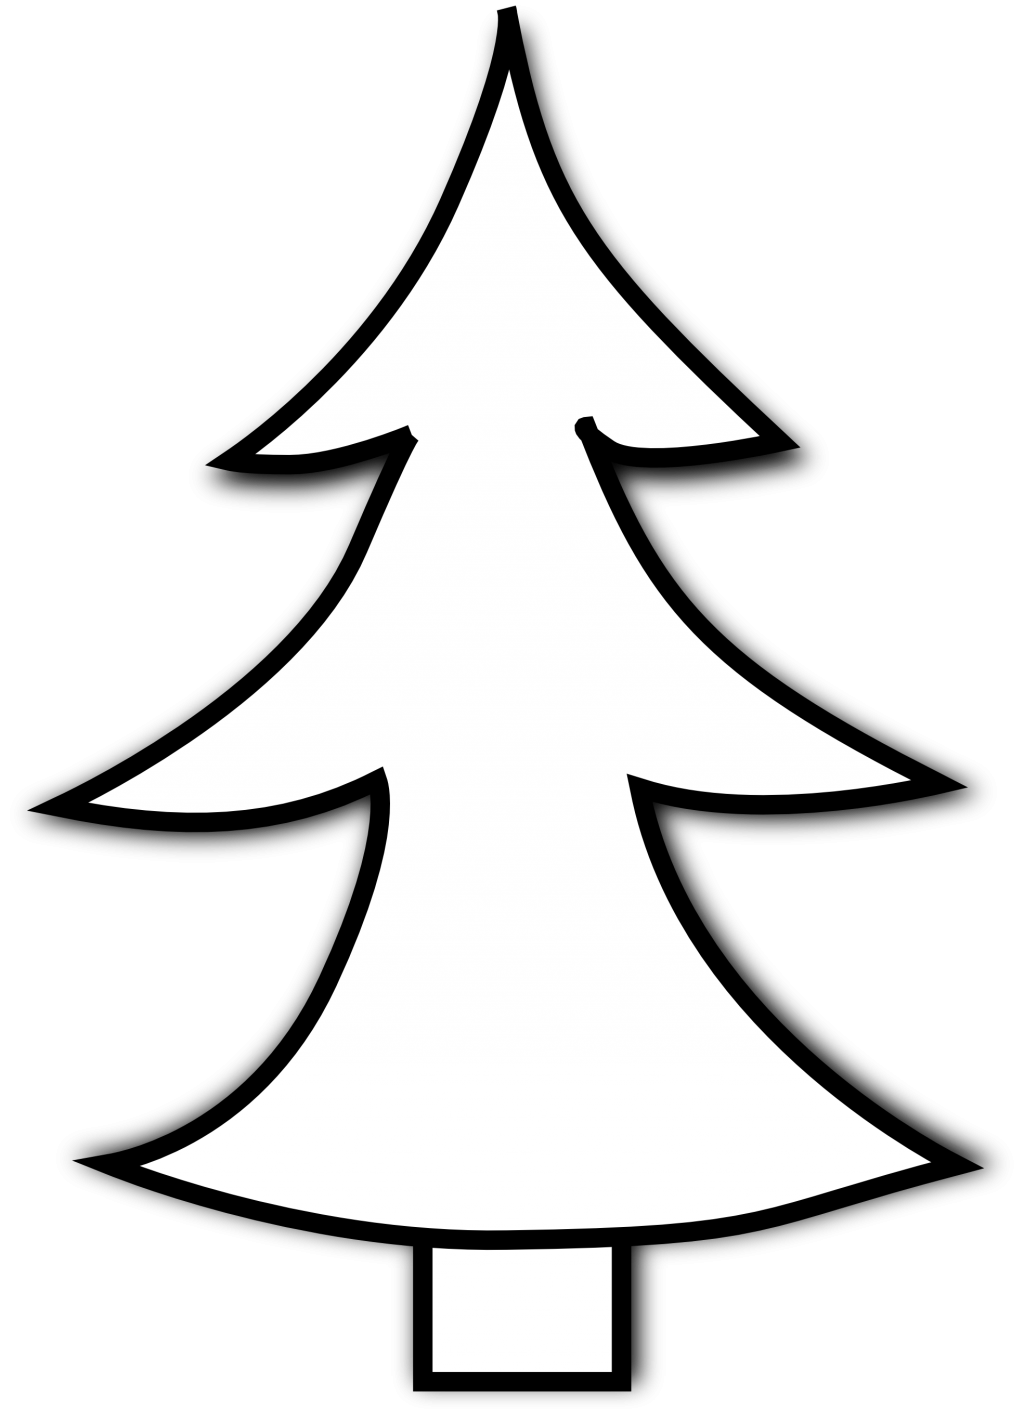 christmas tree silhouette clip art at getdrawings com free for rh getdrawings com xmas tree clipart black and white xmas tree clipart black and white